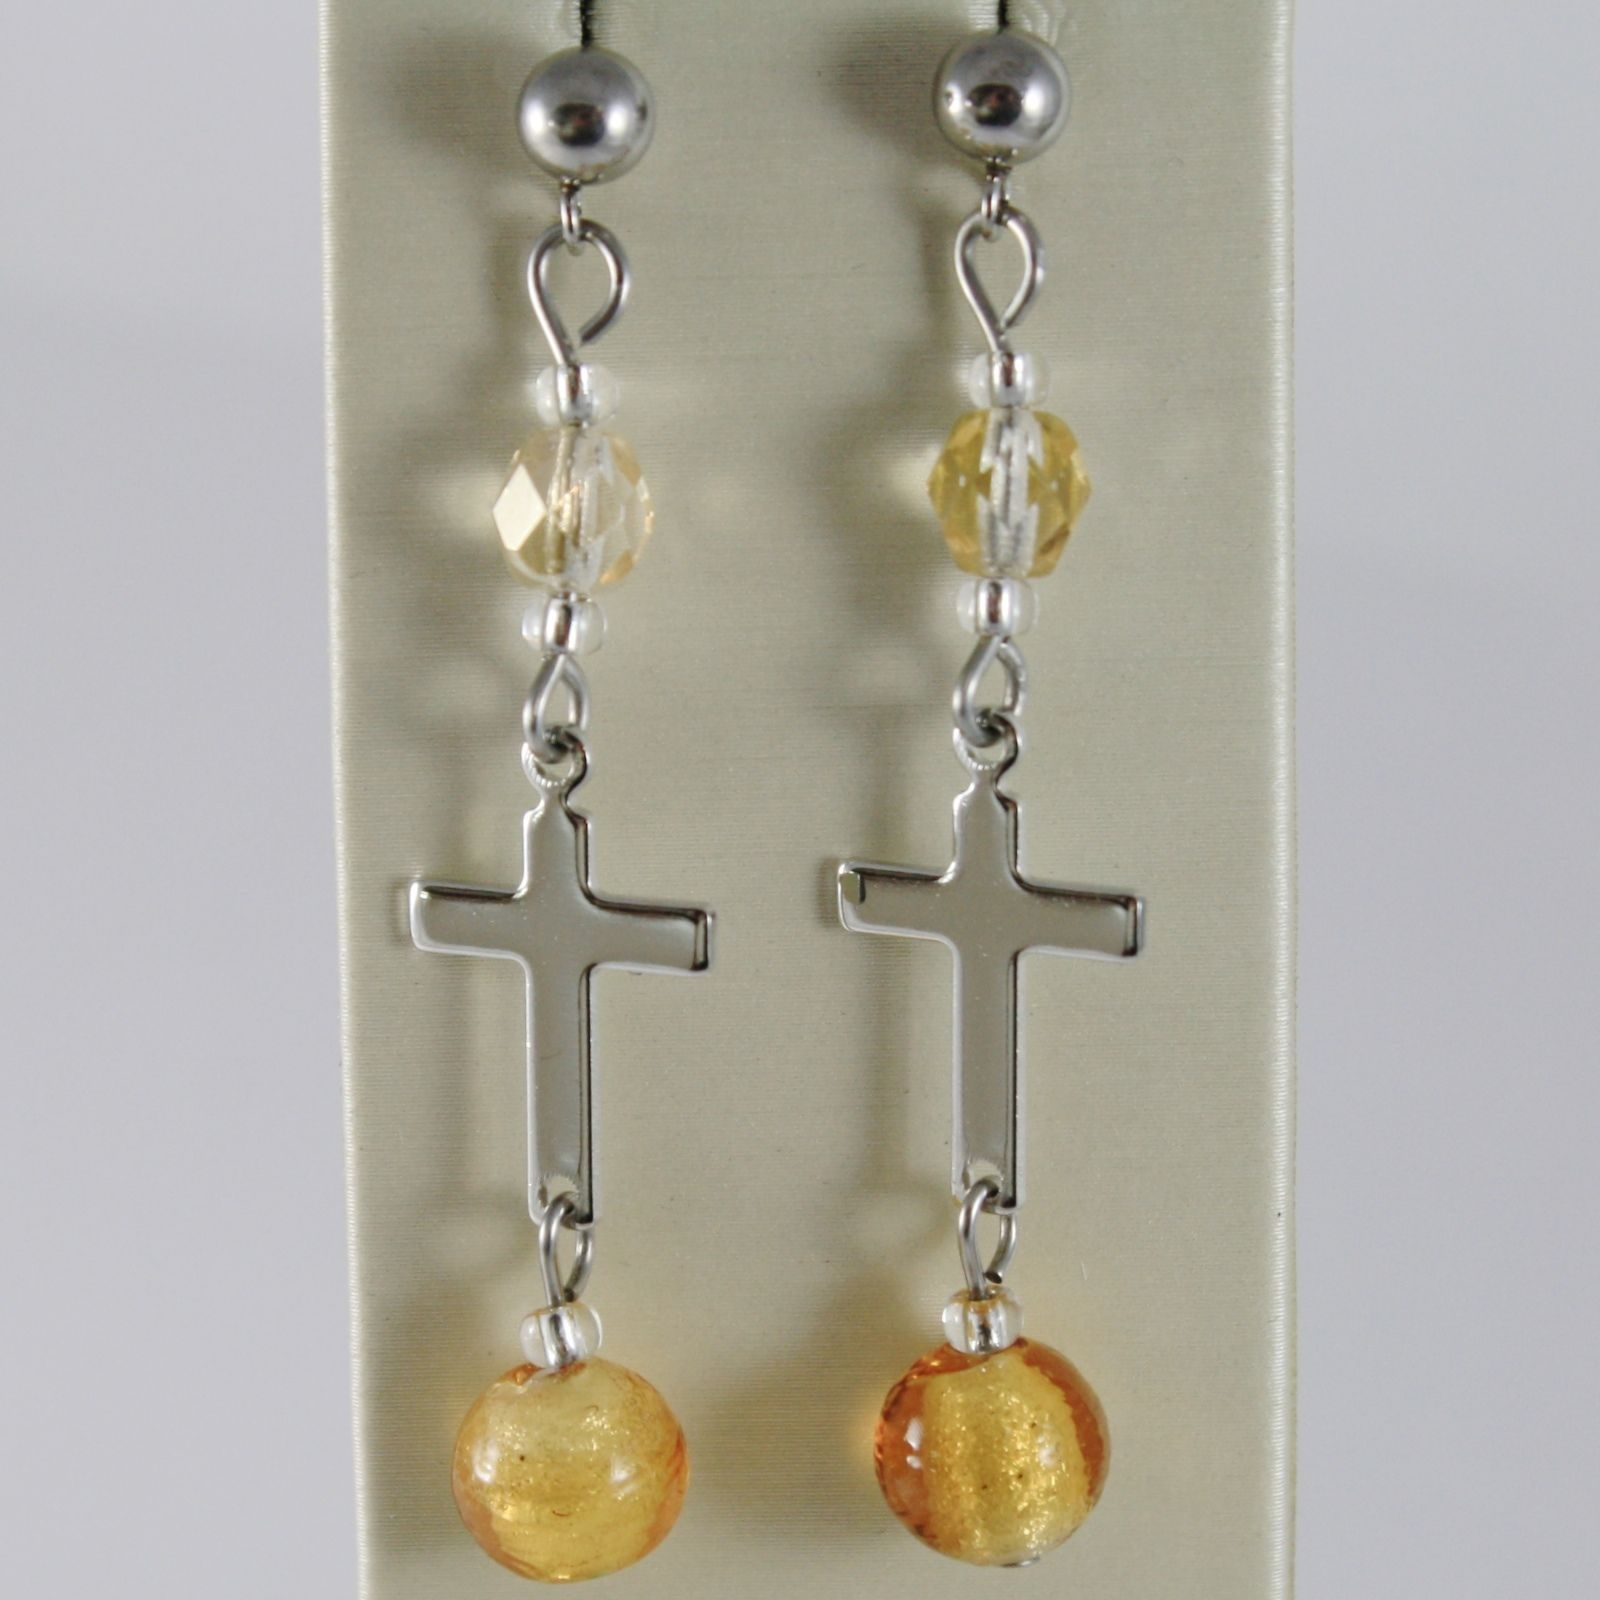 EARRINGS ANTICA MURRINA VENEZIA WITH MURANO GLASS YELLOW AND CROSS